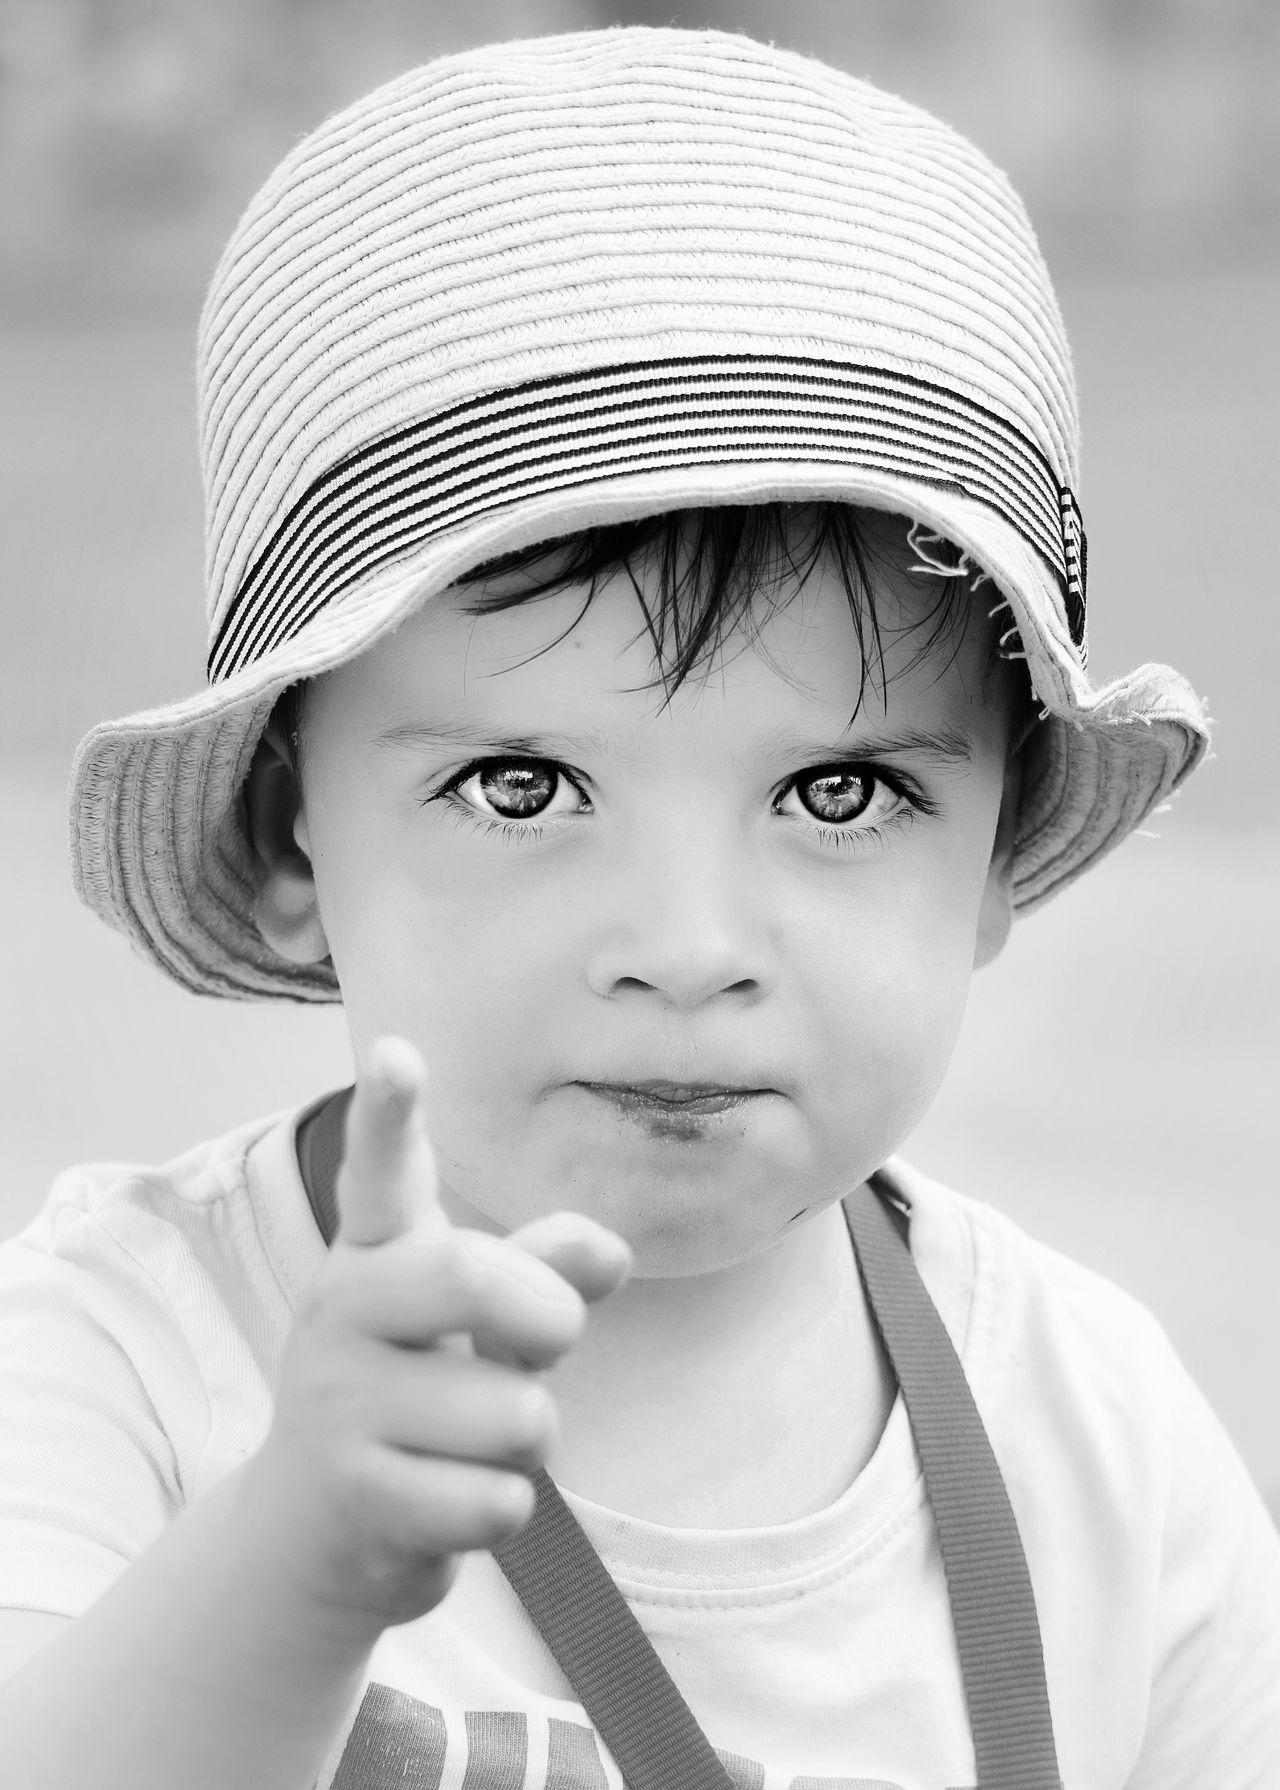 I WANT YOU 👇 Portrait One Person Childhood Headshot Child Looking At Camera Children Only The Portraitist - 2017 EyeEm Awards